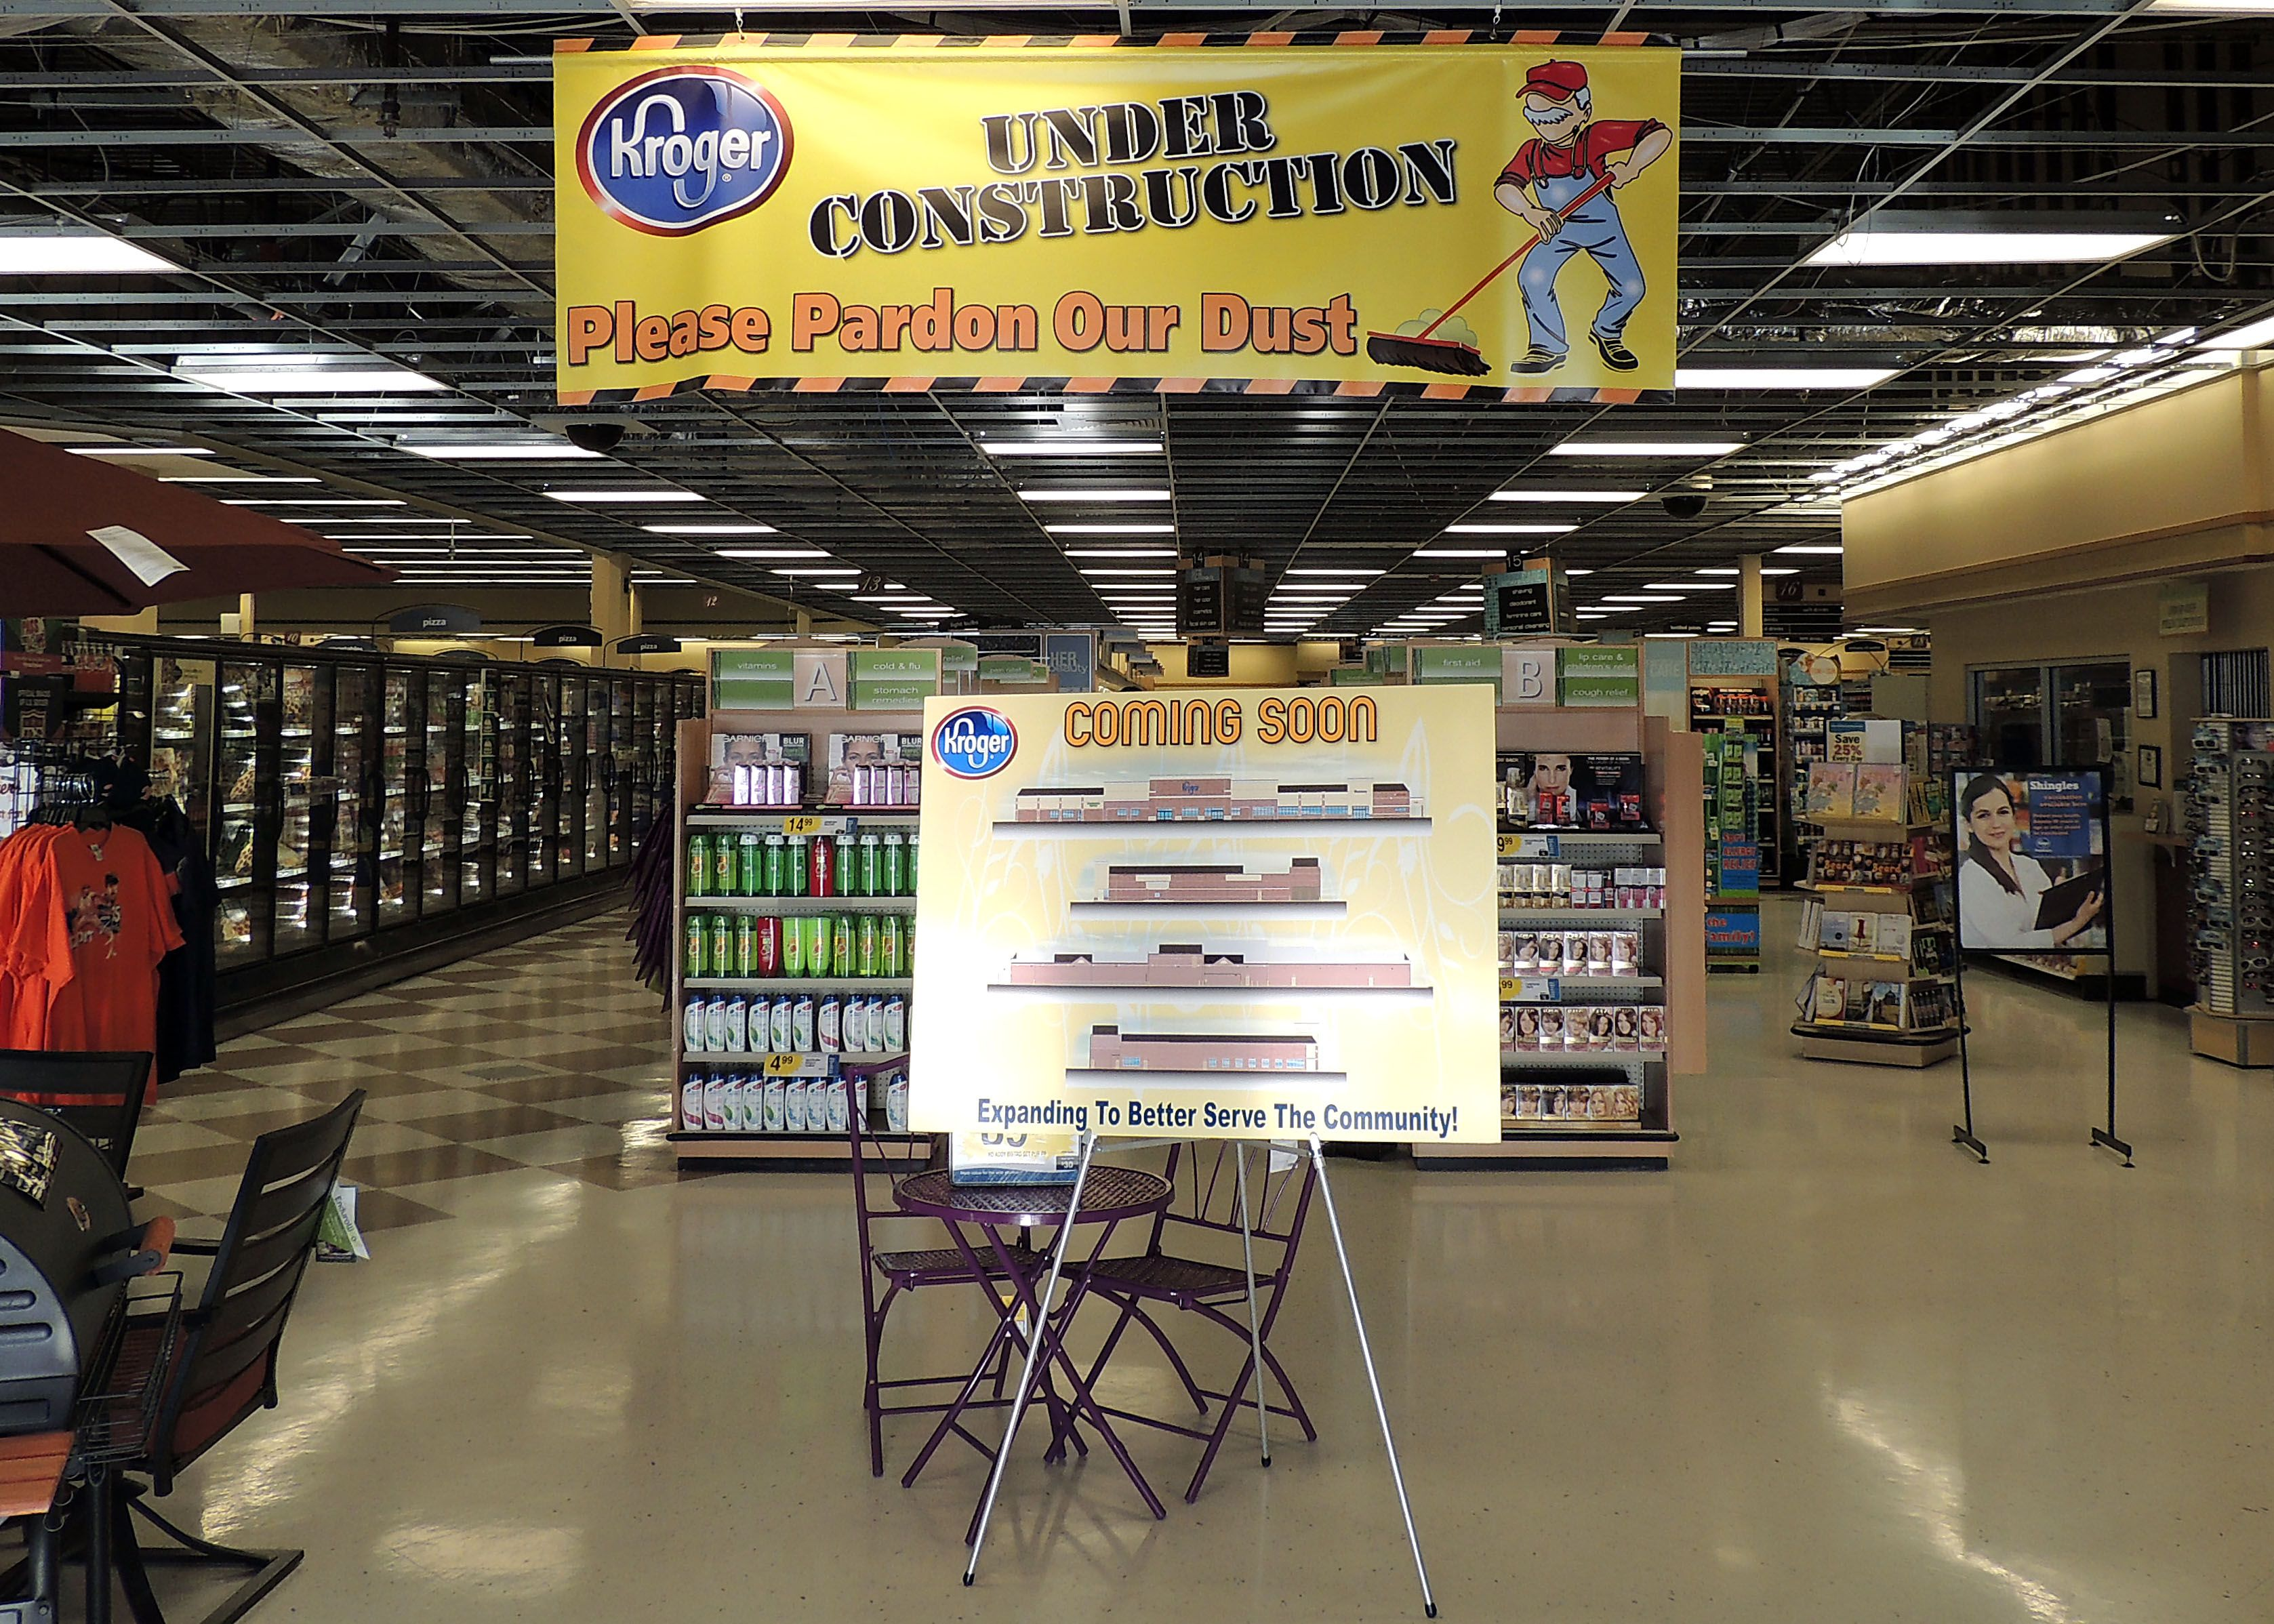 Interior Department Signs And Banners For Kroger Food Stores - Vinyl banners with pole pocketssignbanner printing